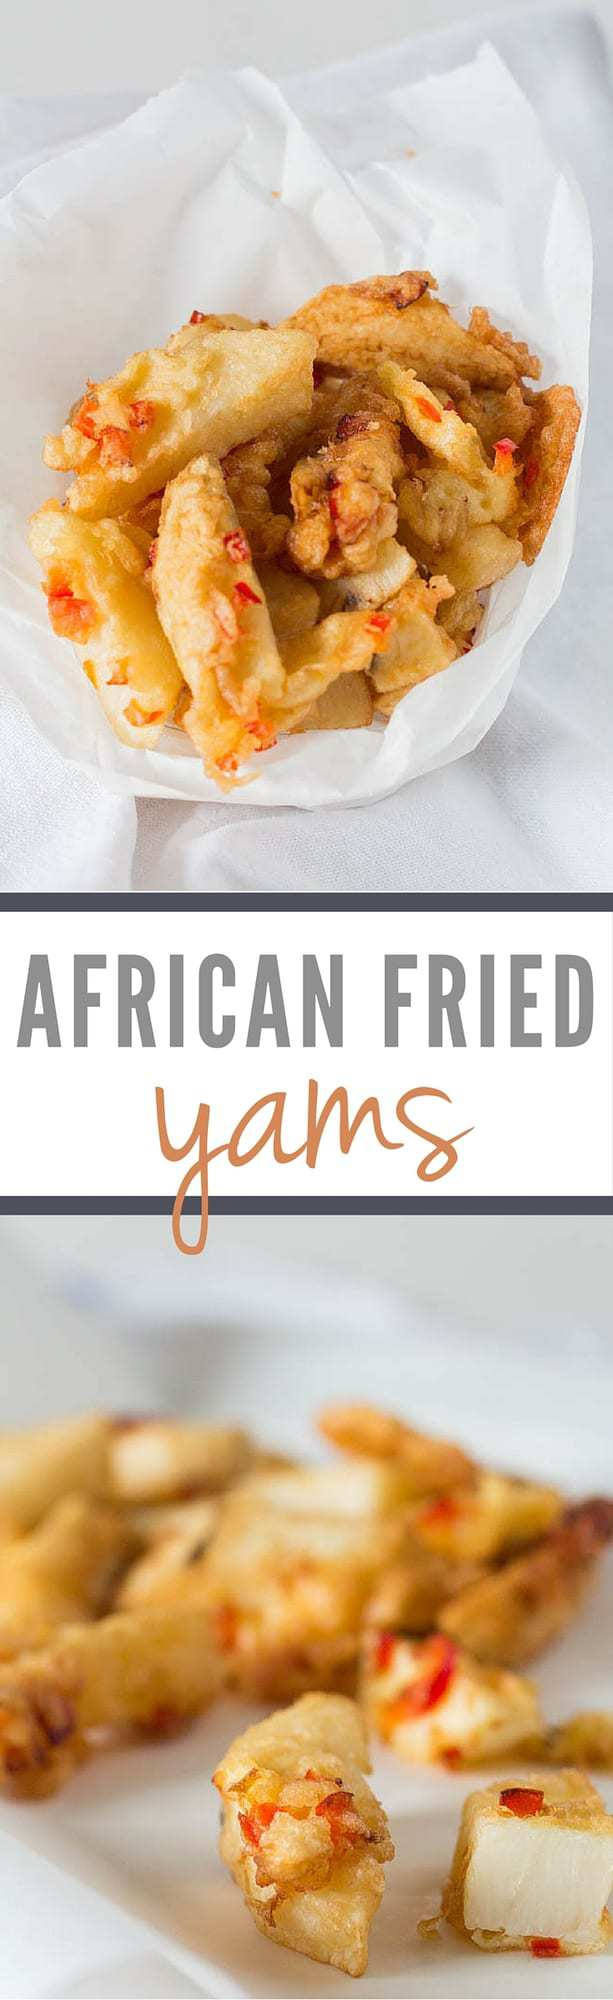 Cuisine Yam How To Cook African Yam Fries Sierra Leone Flavours